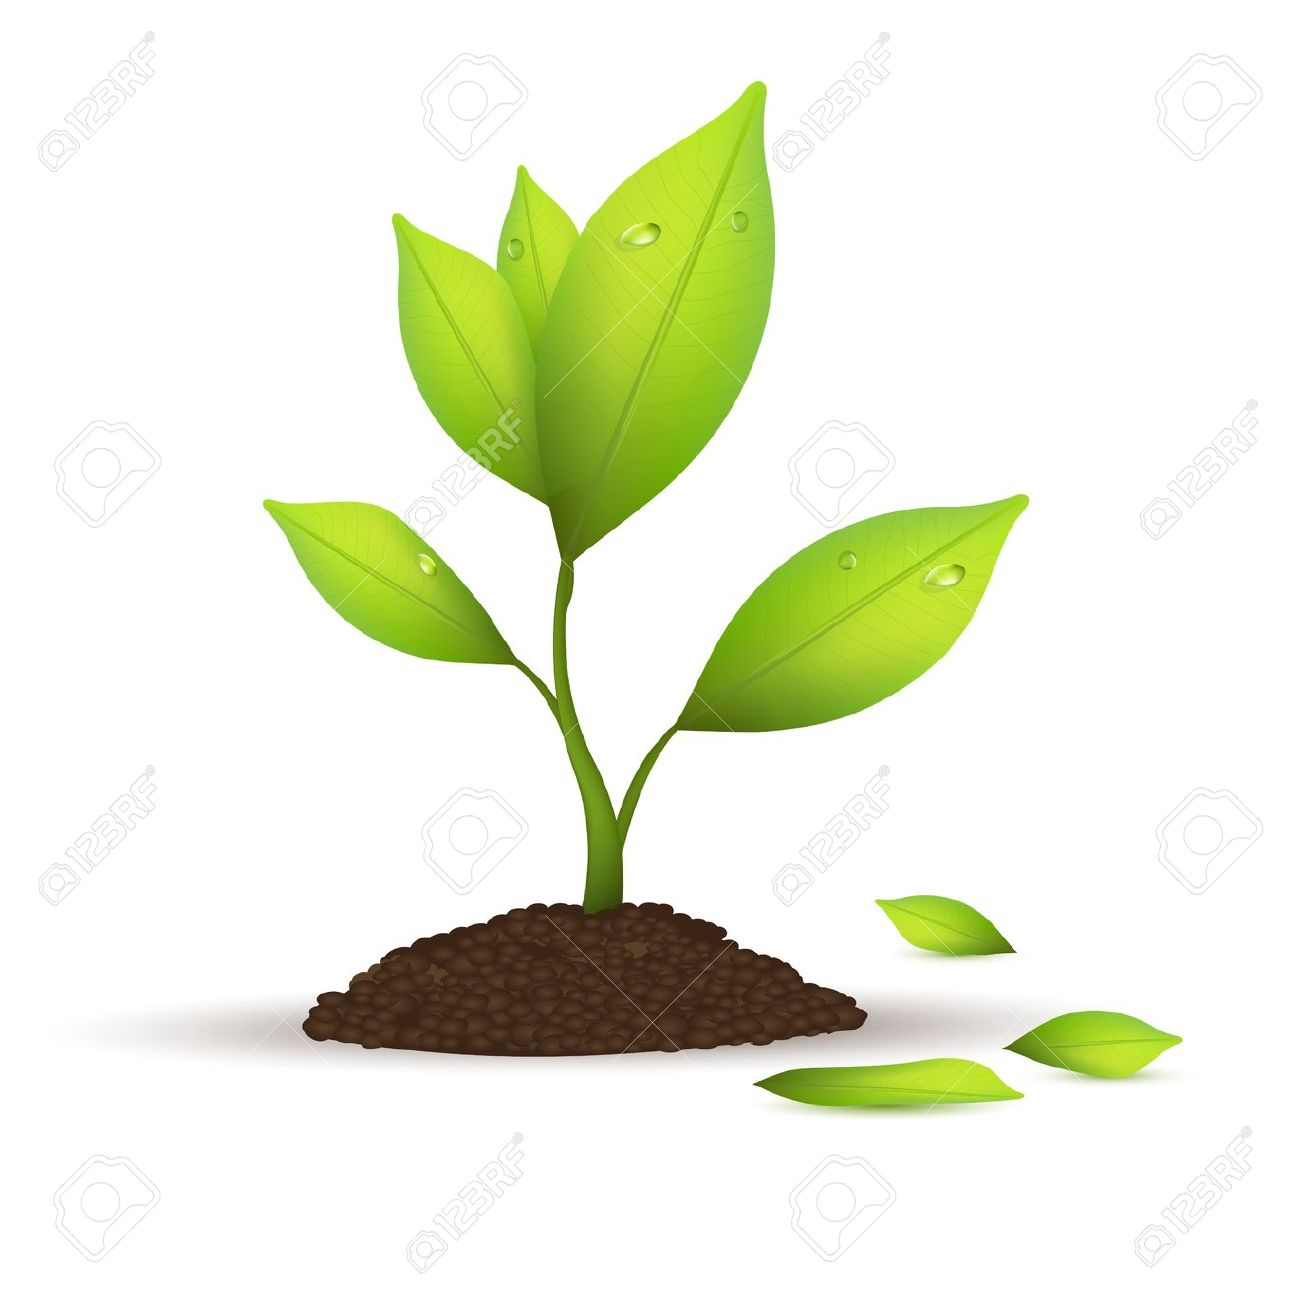 Plants clipart free graphic free library Plants Clip Art Free | Clipart Panda - Free Clipart Images graphic free library